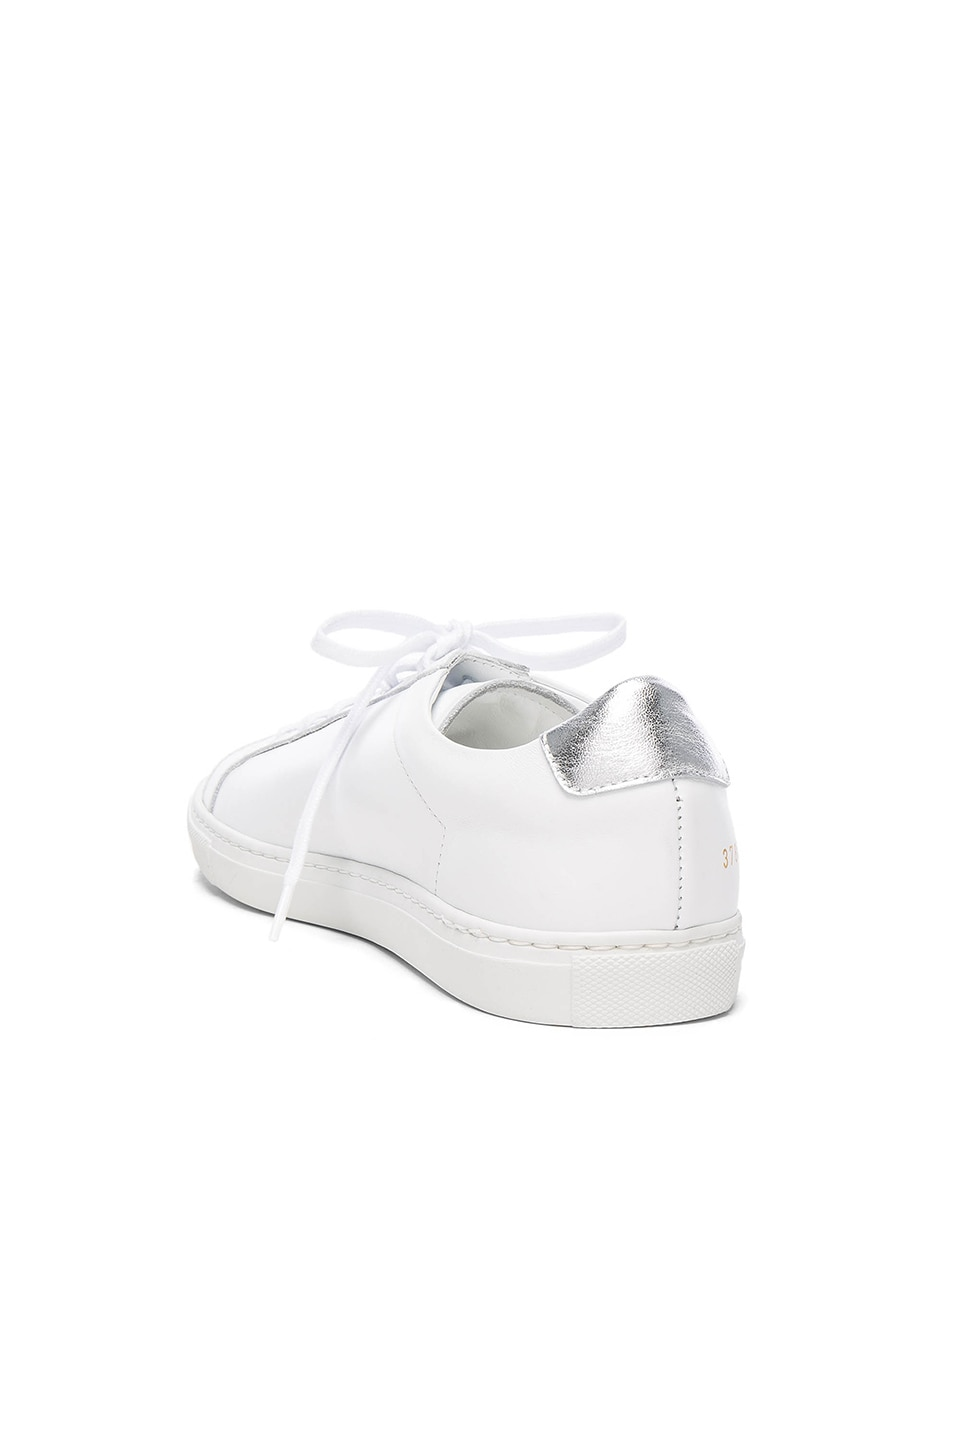 2 stores in stock common projects achilles leather low top sneaker white white silver. Black Bedroom Furniture Sets. Home Design Ideas